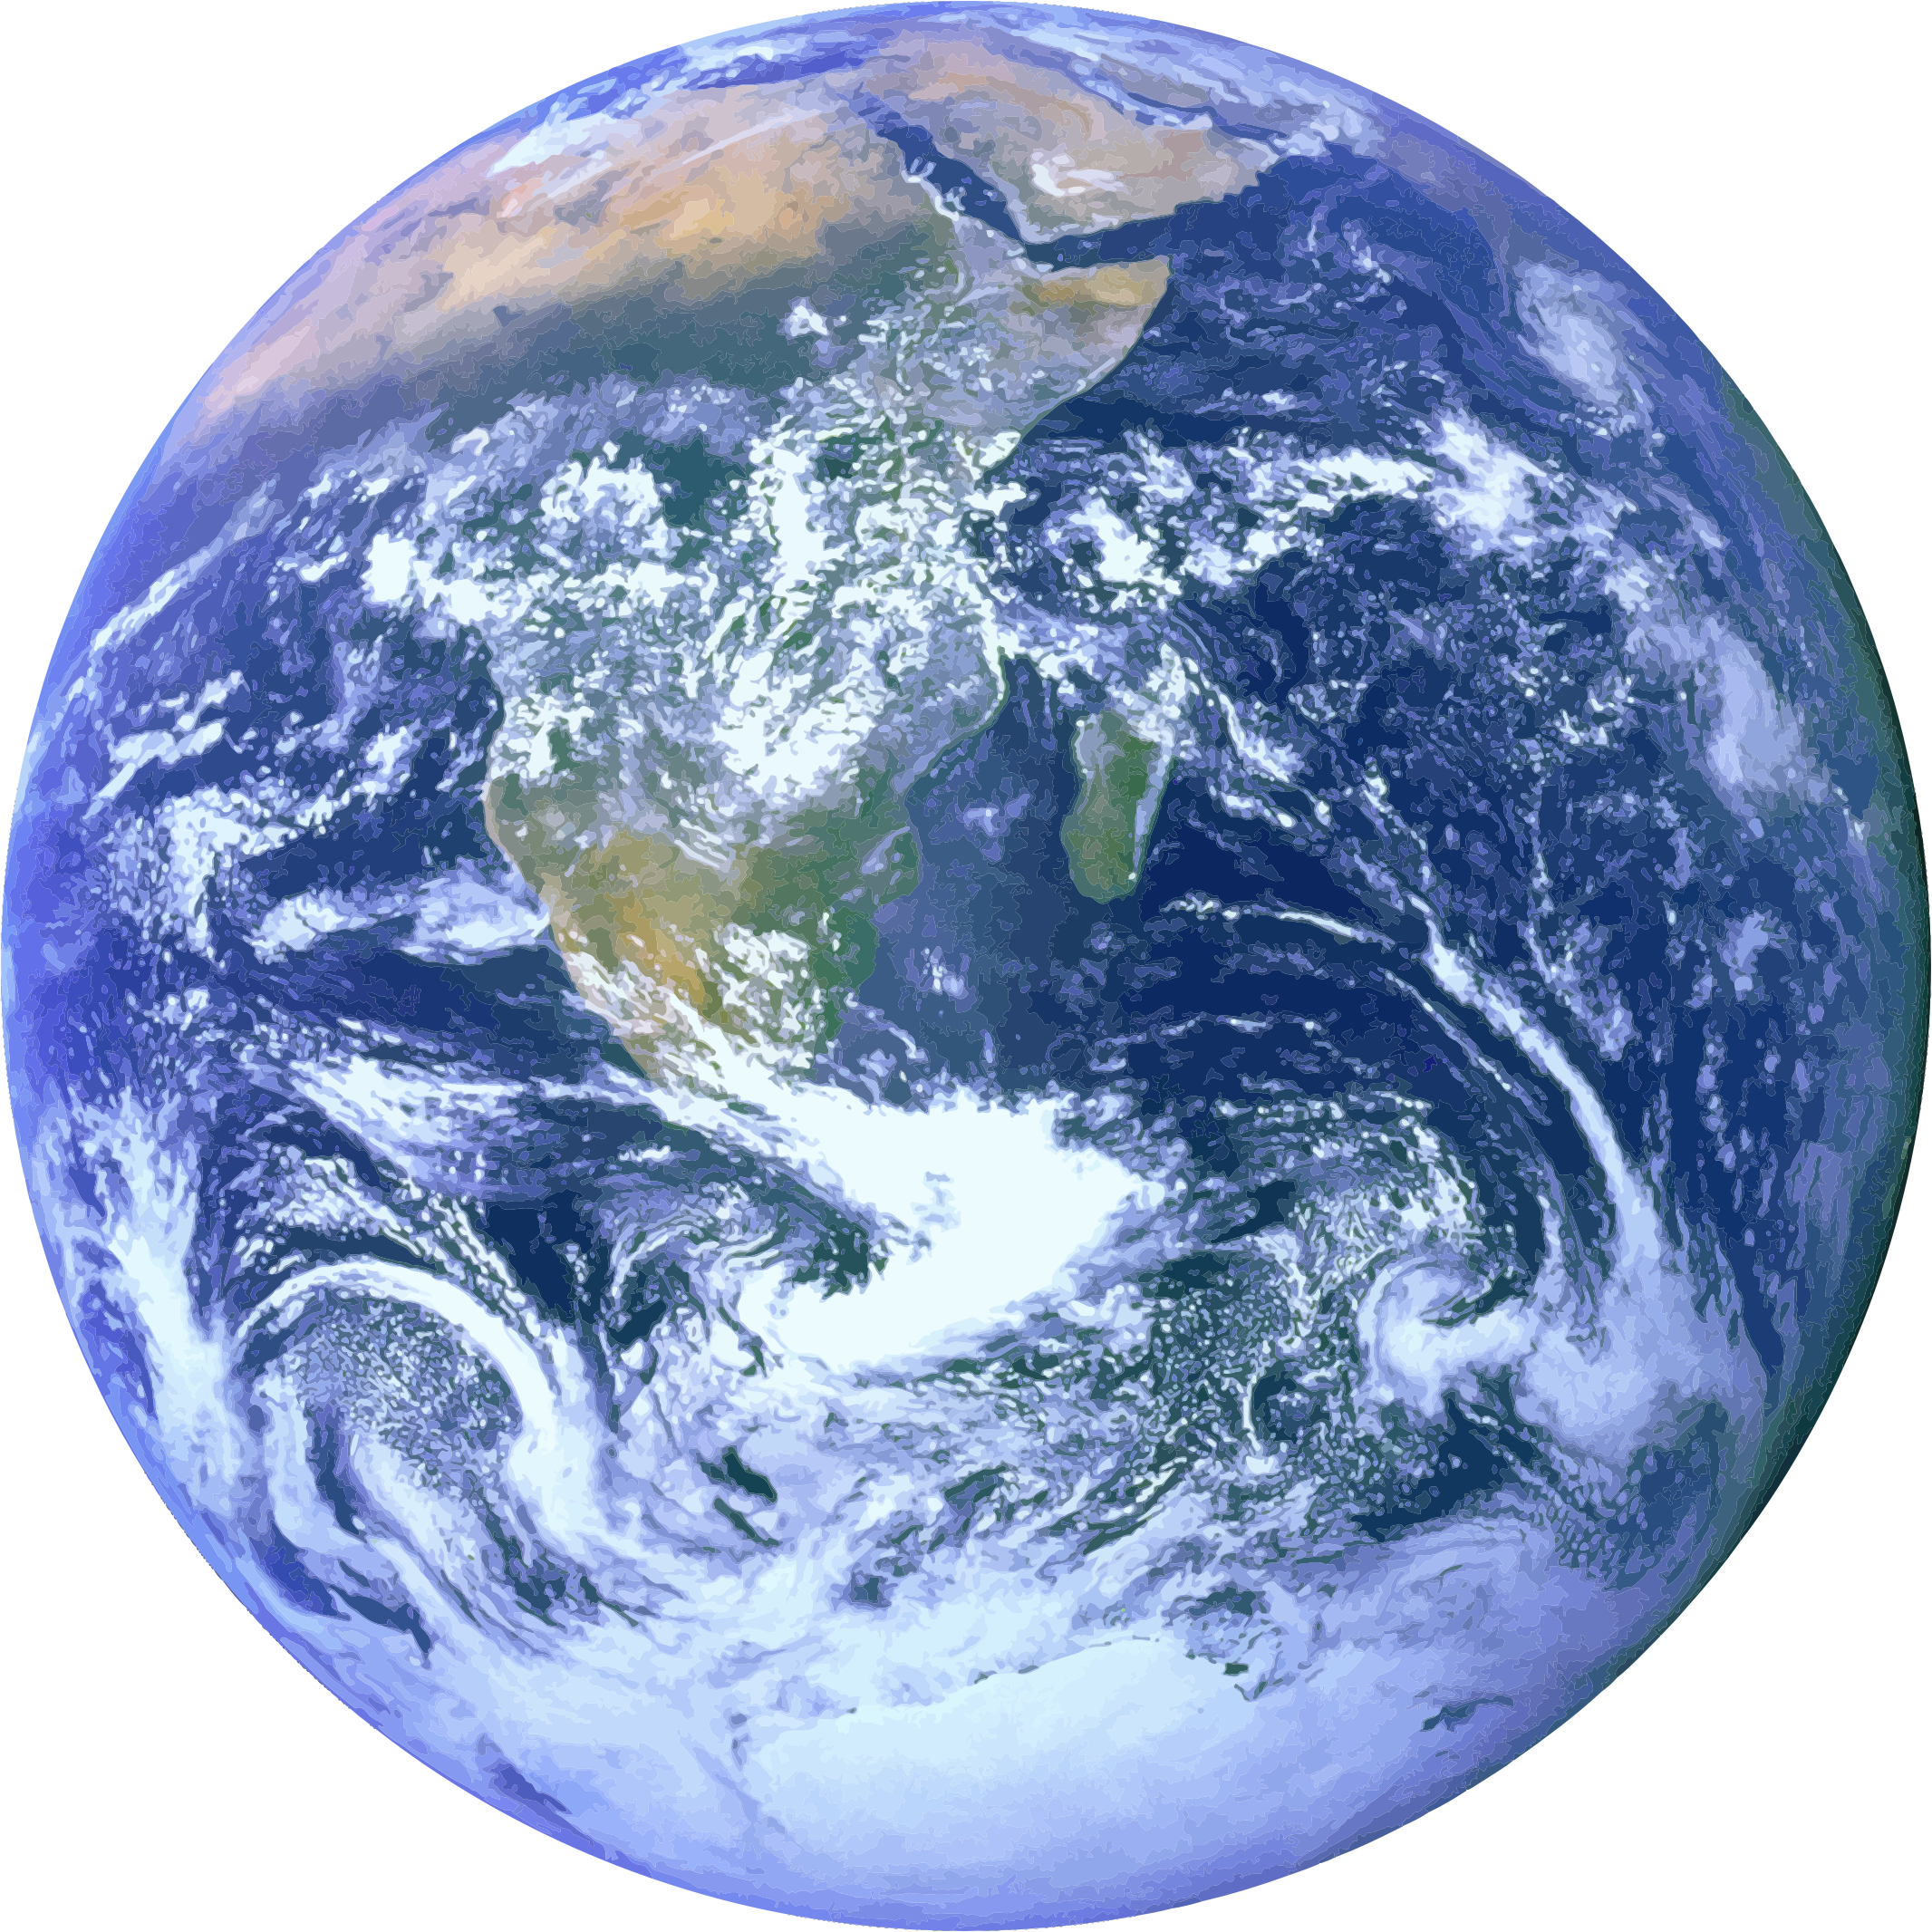 Clipart - Blue Marble (Earth)